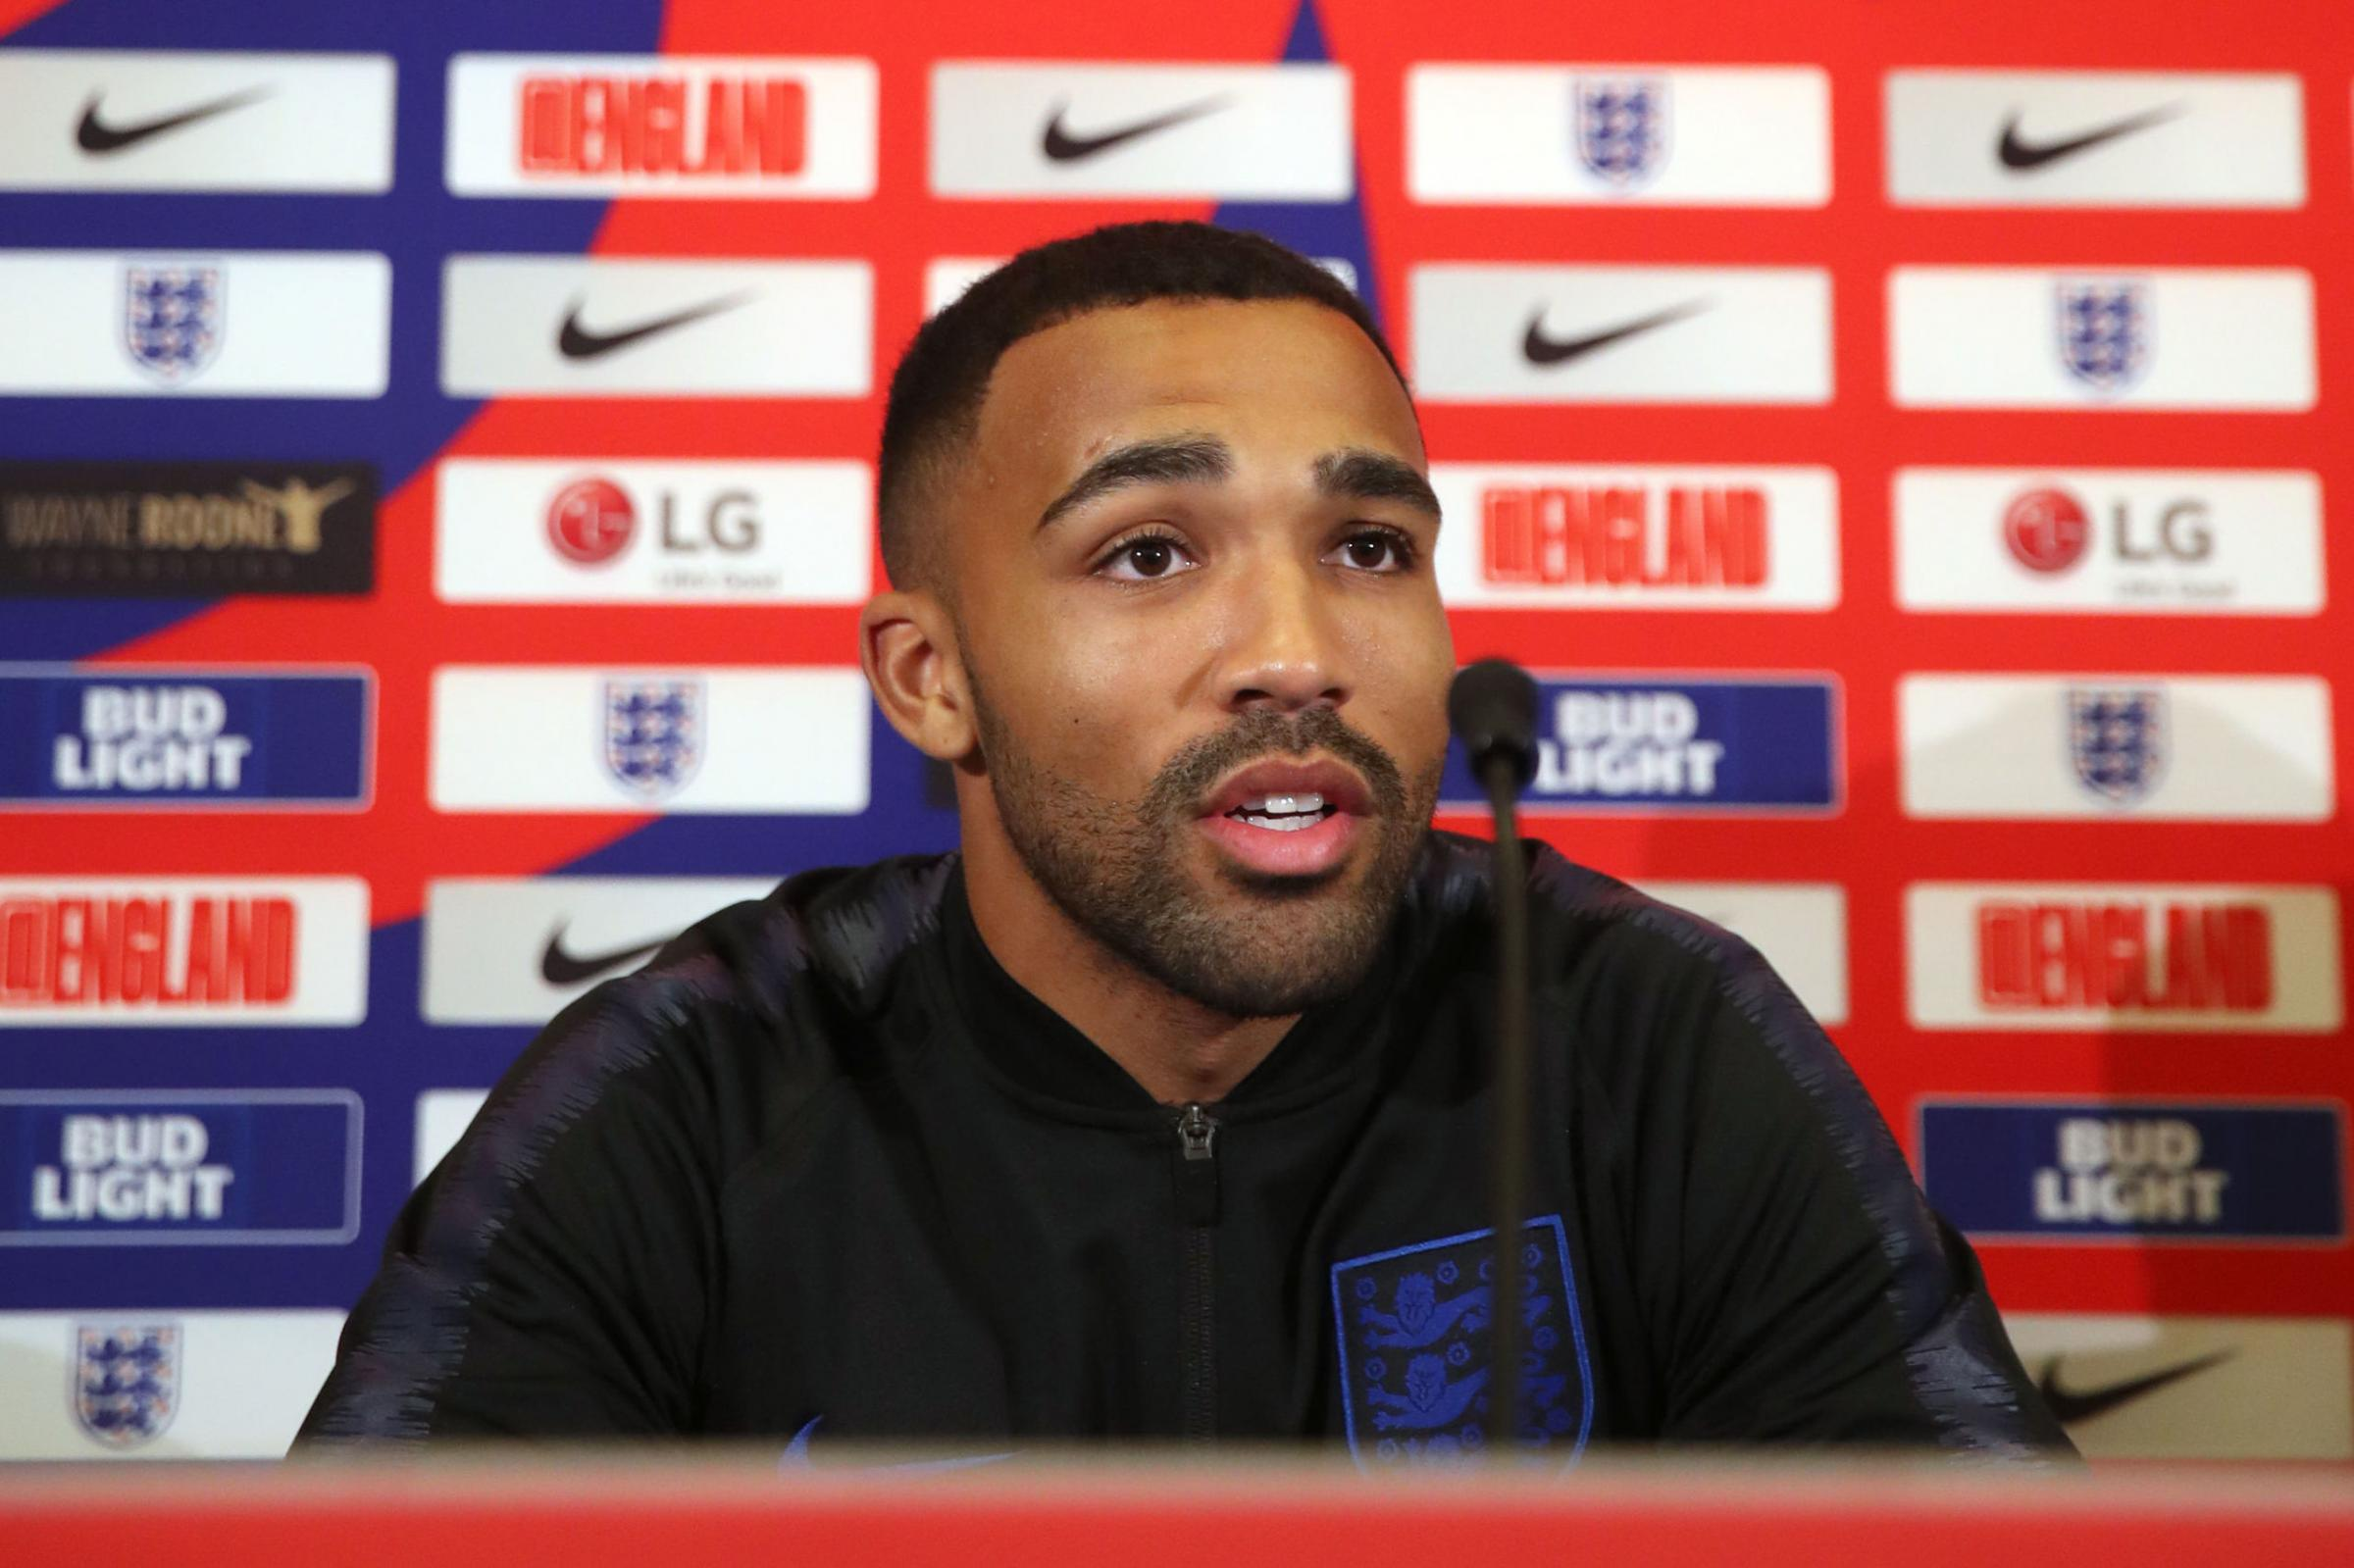 Three Lions hopeful Wilson played 'Wembley' on the streets as a youngster